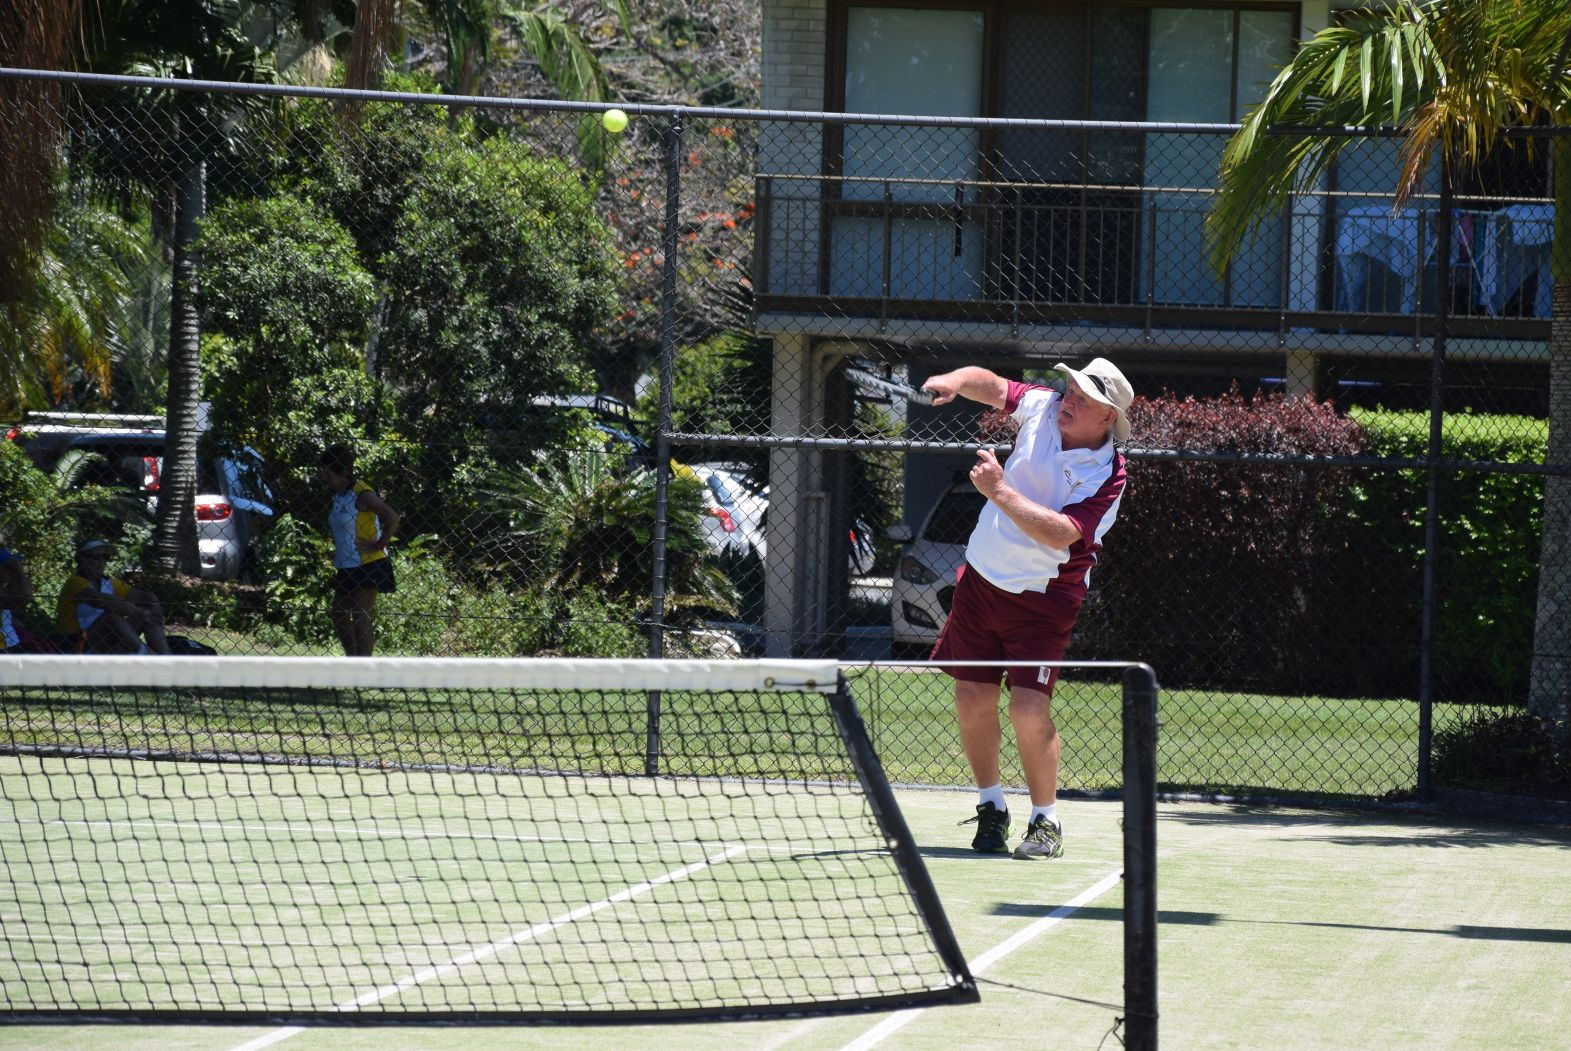 Tennis seniors queensland